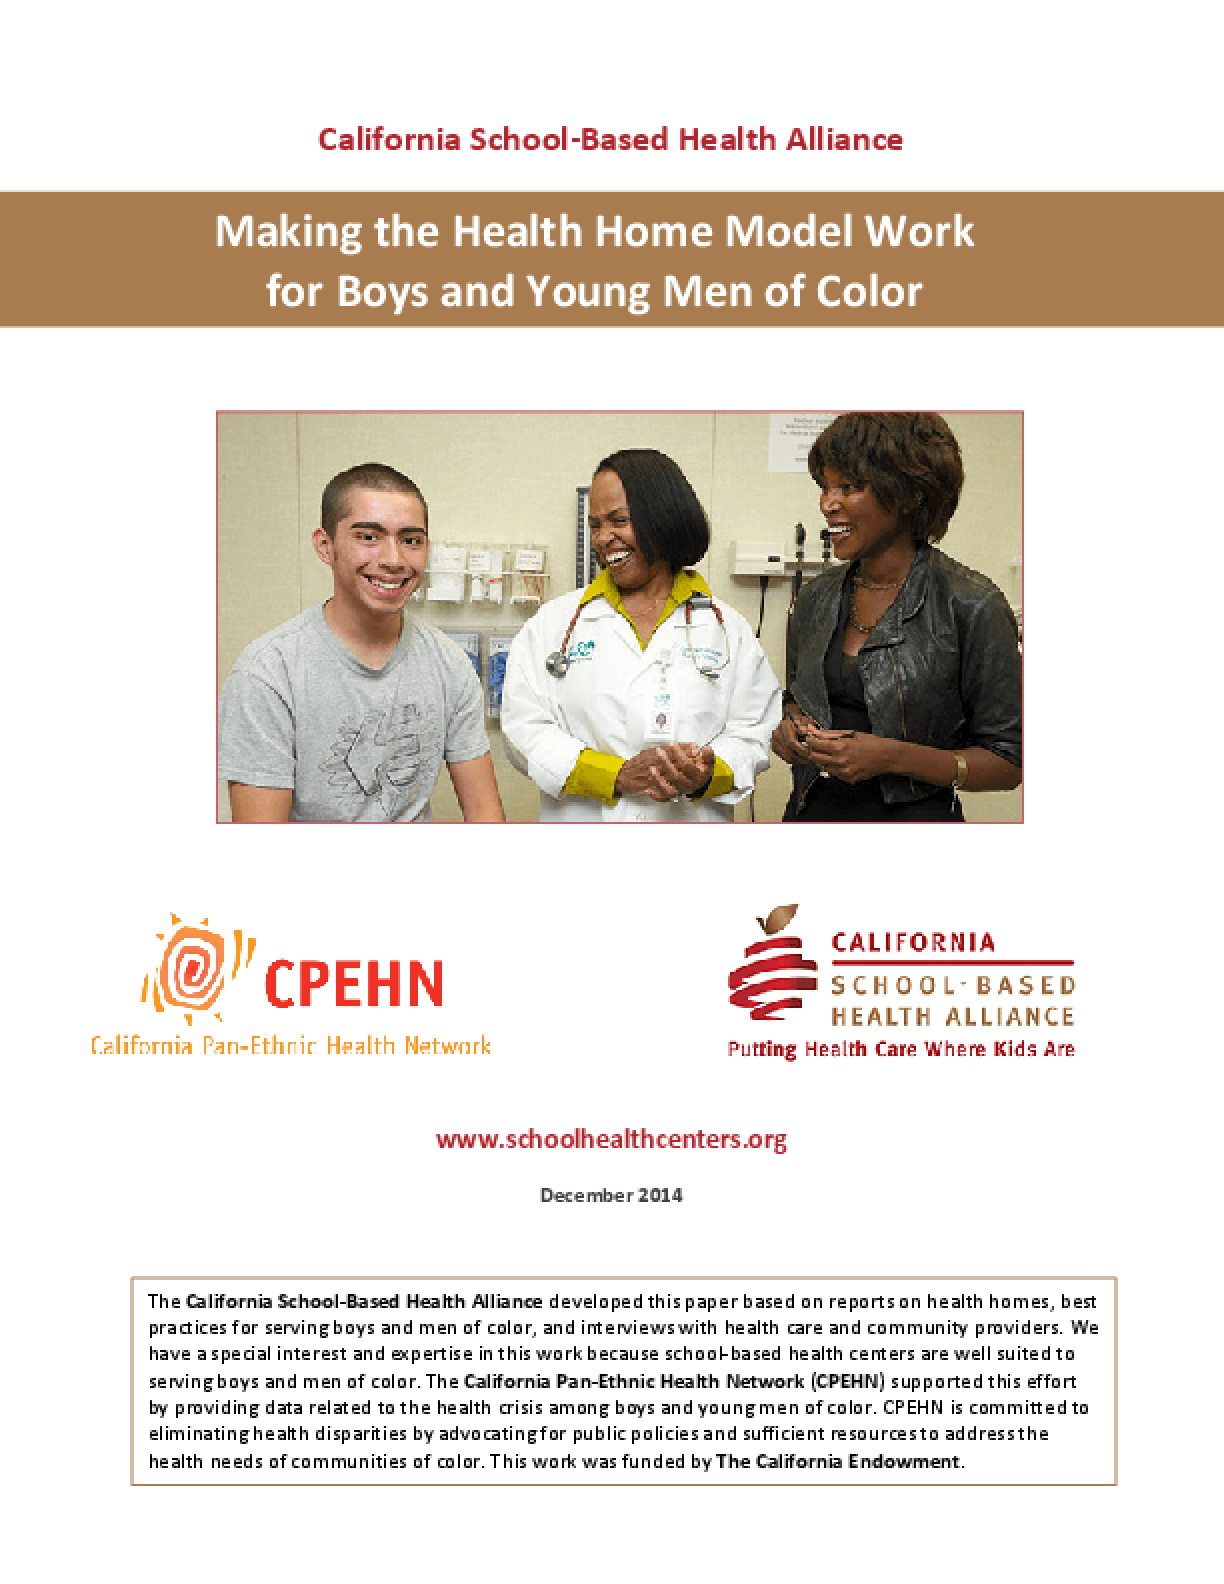 Making the Health Home Model Work for Boys and Young Men of Color